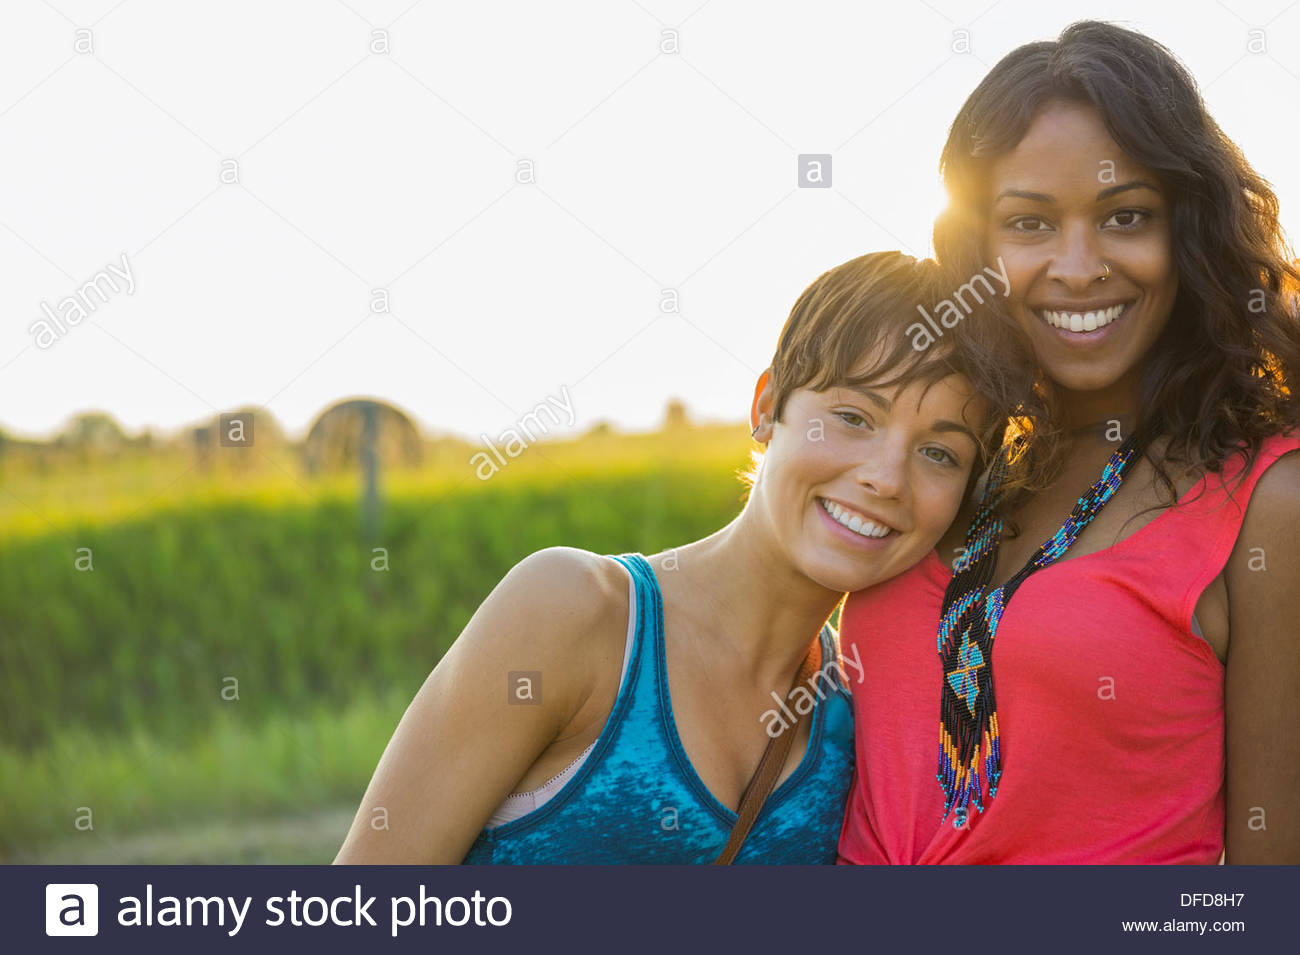 Portrait of young women outdoors - Stock Image